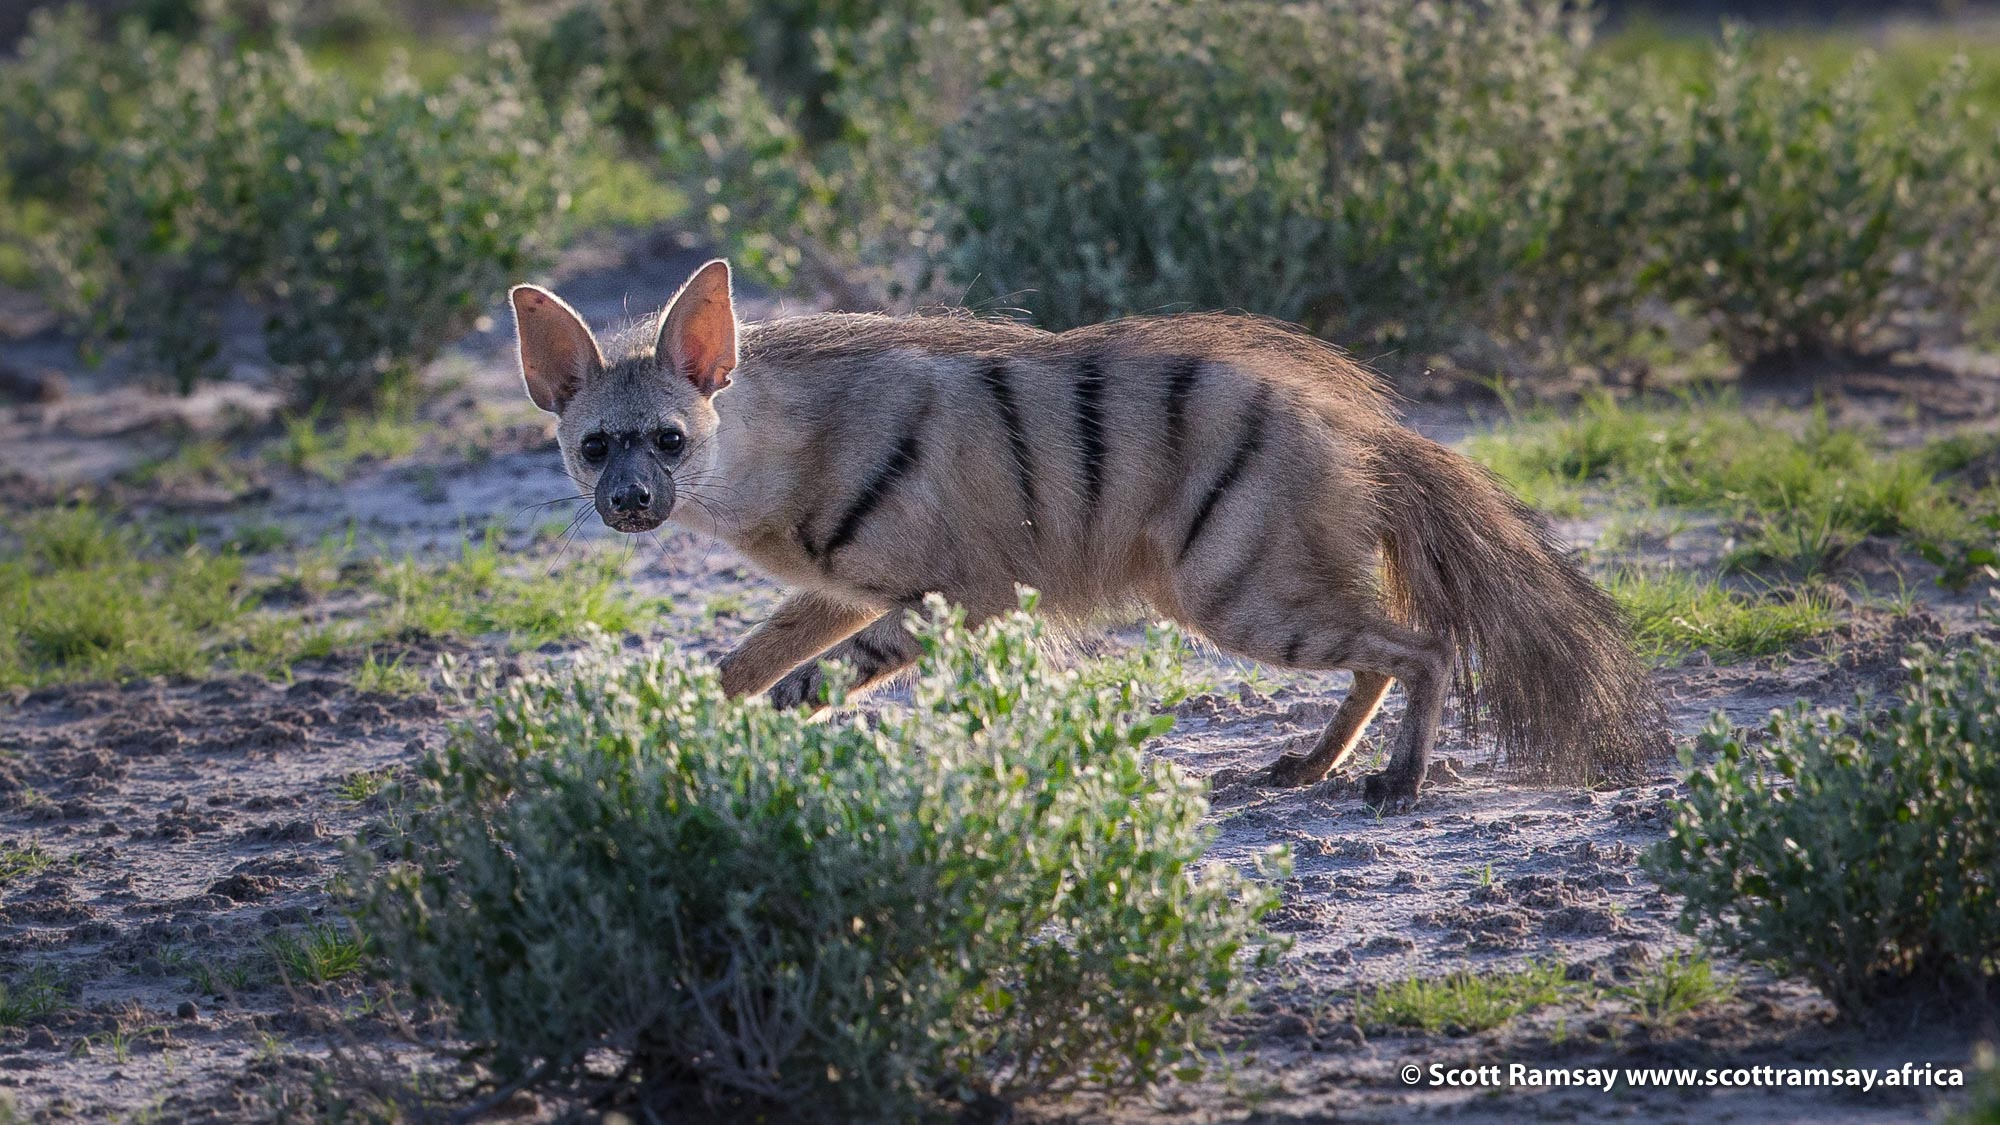 My first sighting ever of an aardwolf! And a very good one too. These are very shy, strictly nocturnal animals, so to see one in good light is very lucky. Early one morning at Piper's Pan, we saw a bat-eared fox pounding its legs on the ground, and we thought it was trying to chase a rodent out of it's burrow, but then this wonderful animal popped it's head up out of the hole, and the bat-eared fox (and several others) chased it away! Poor aardwolf...